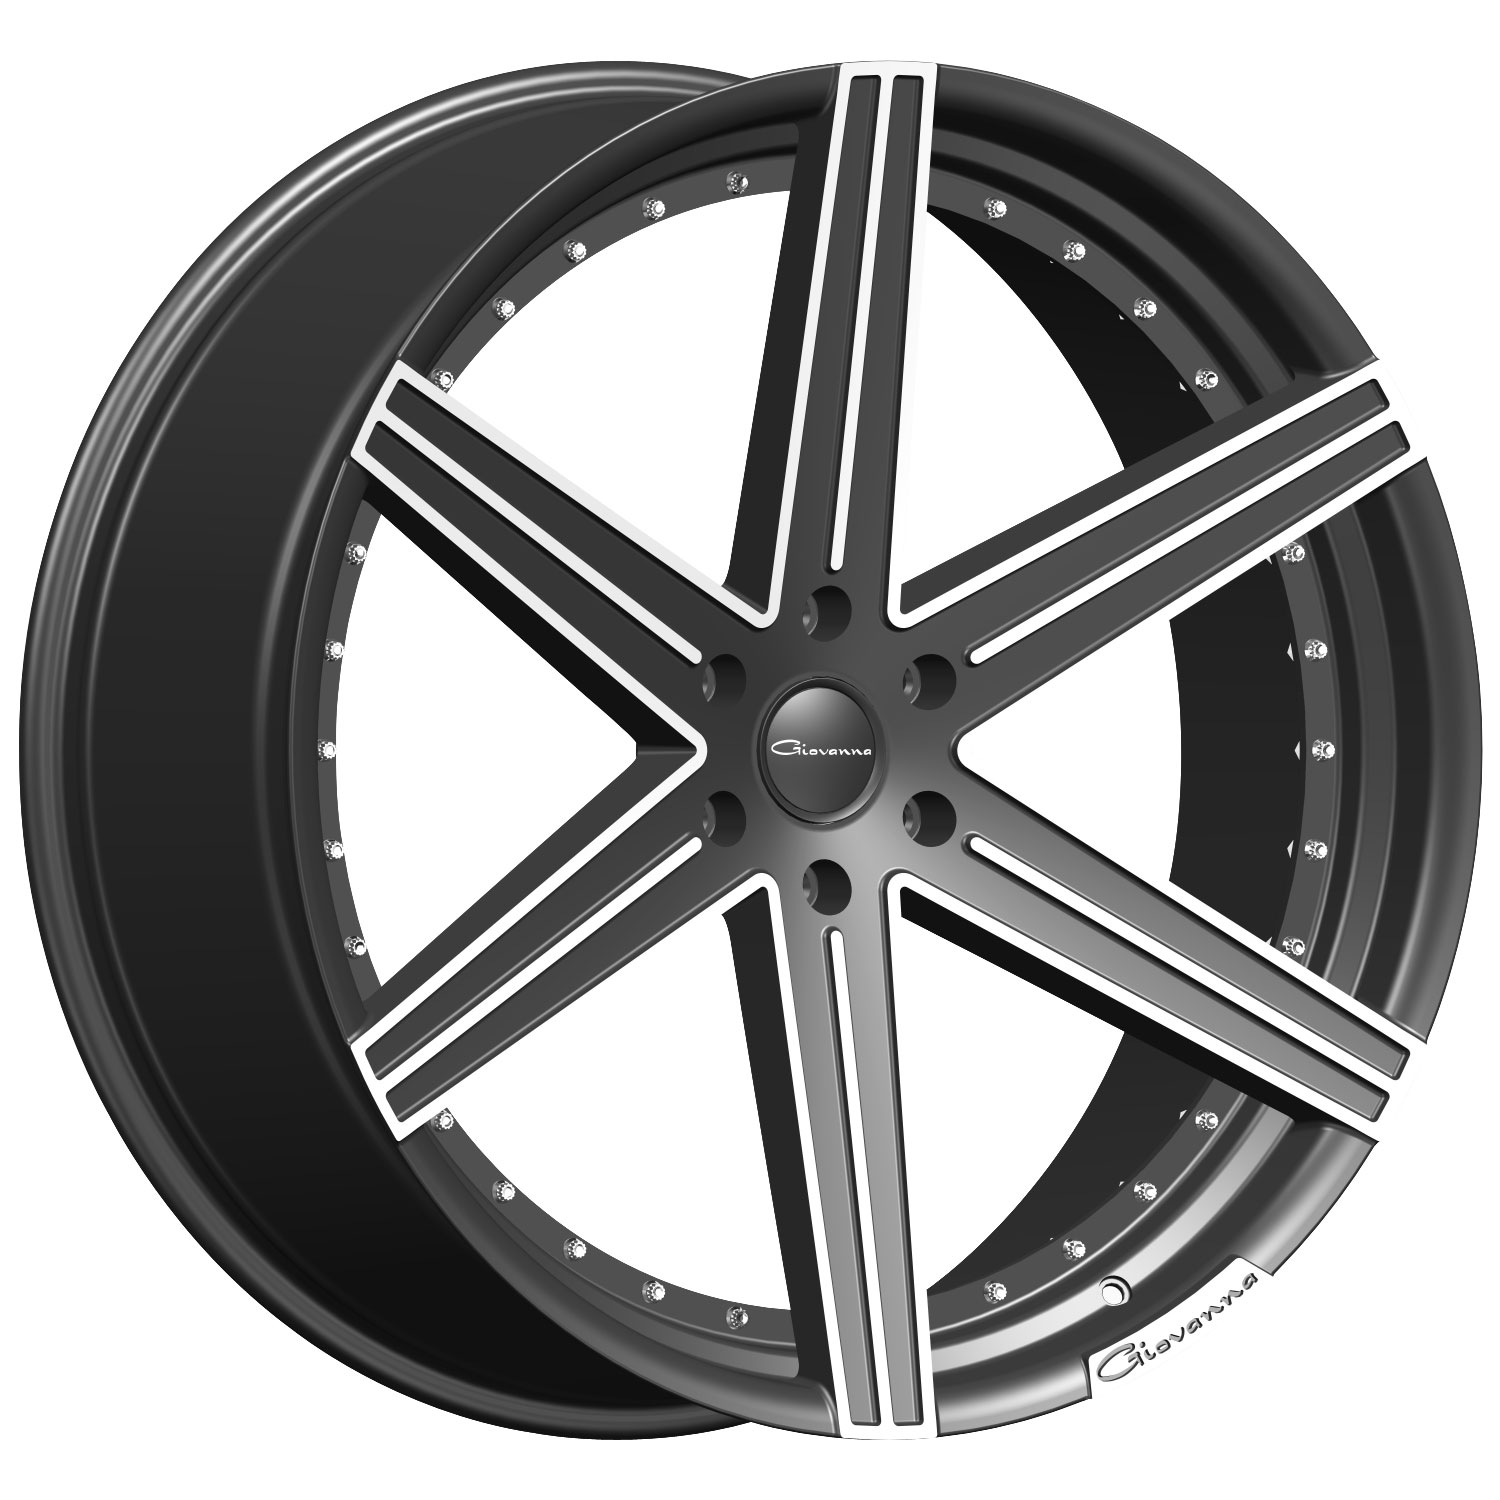 Dubllin-6-26x10-Black-with-Machined-Face